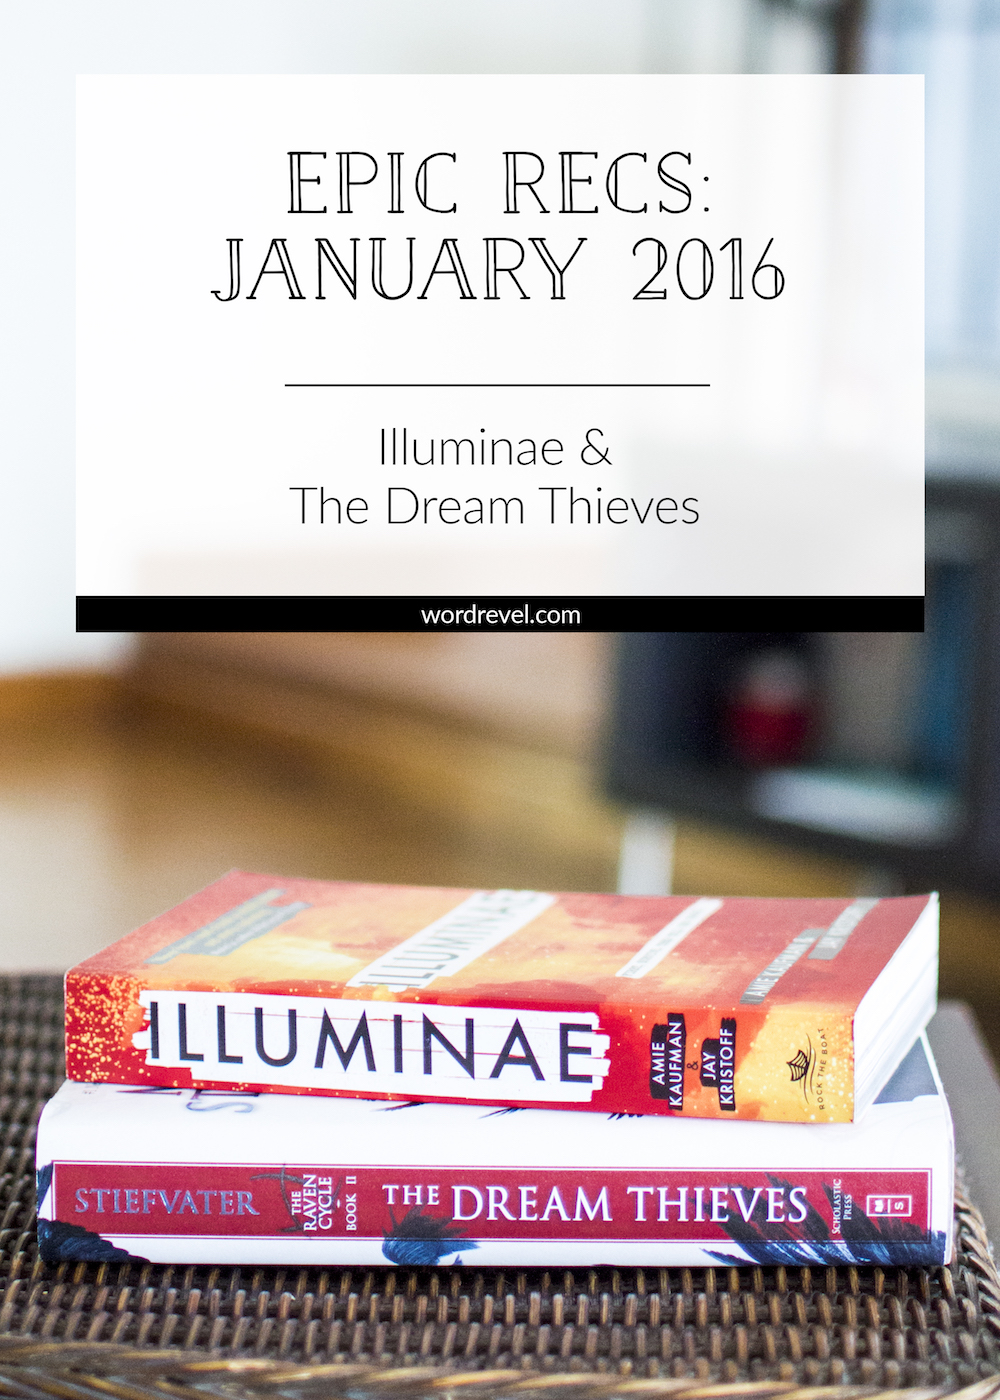 Epic Recs: Jan 2016 – Illuminae & The Dream Thieves